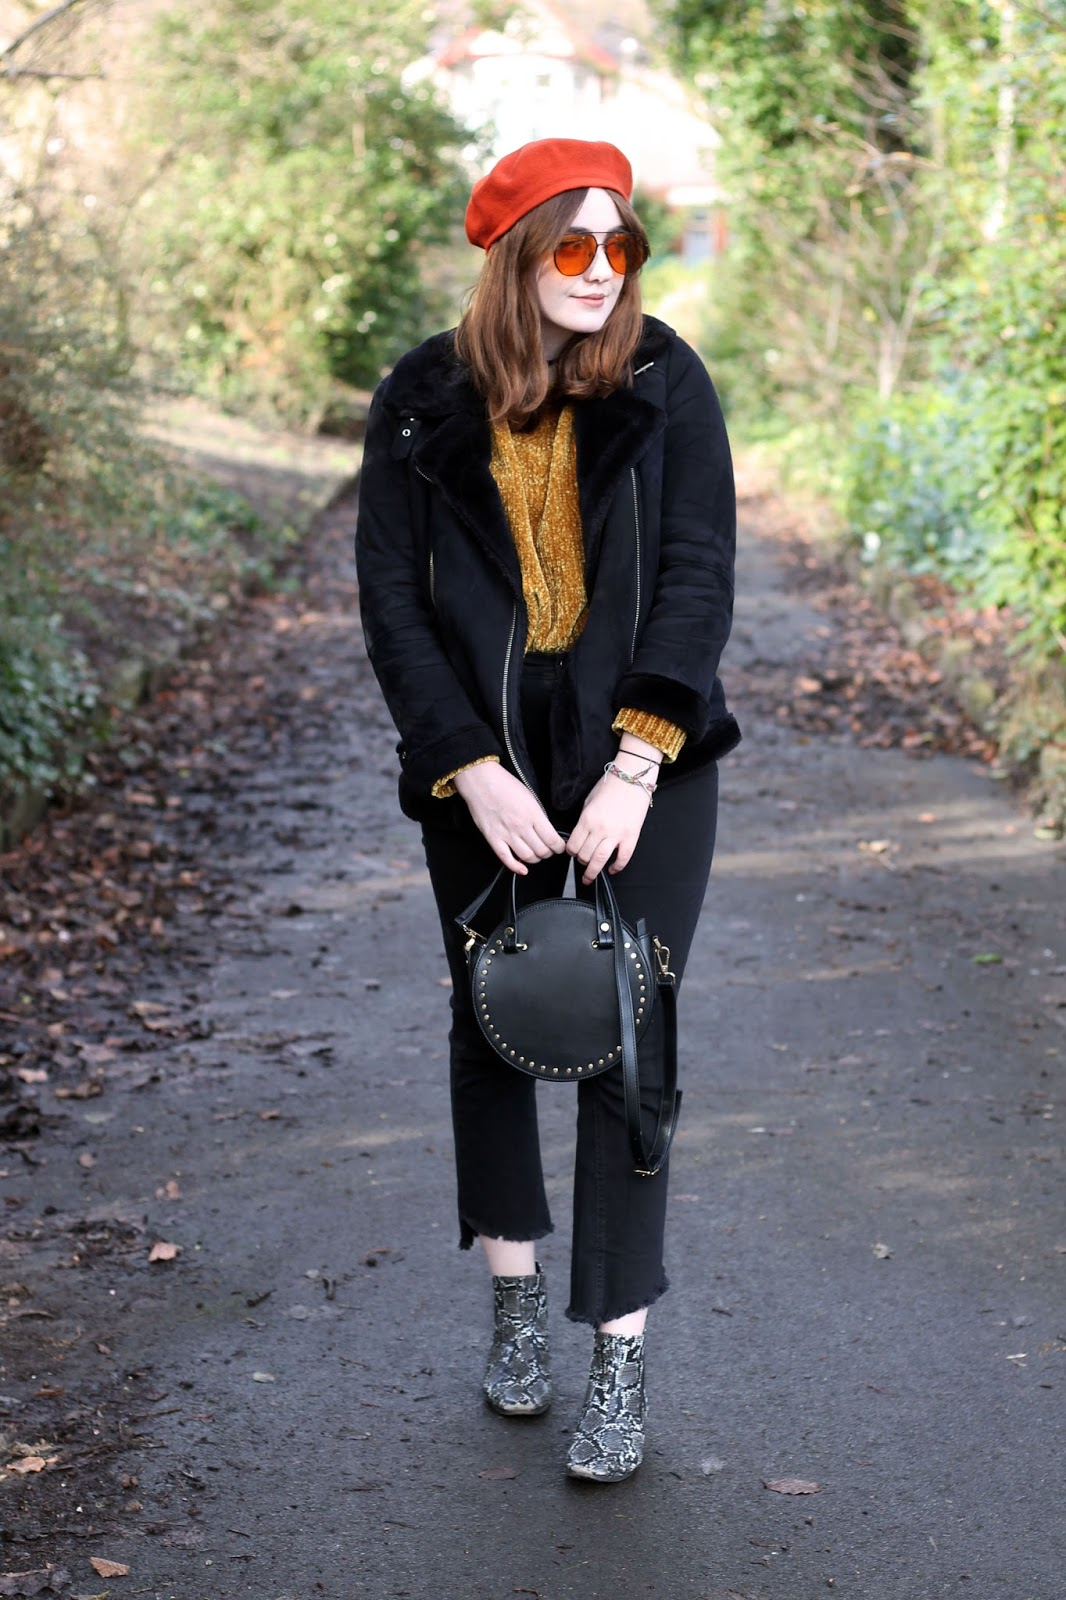 70s inspired outfit on Liverpool fashion blogger